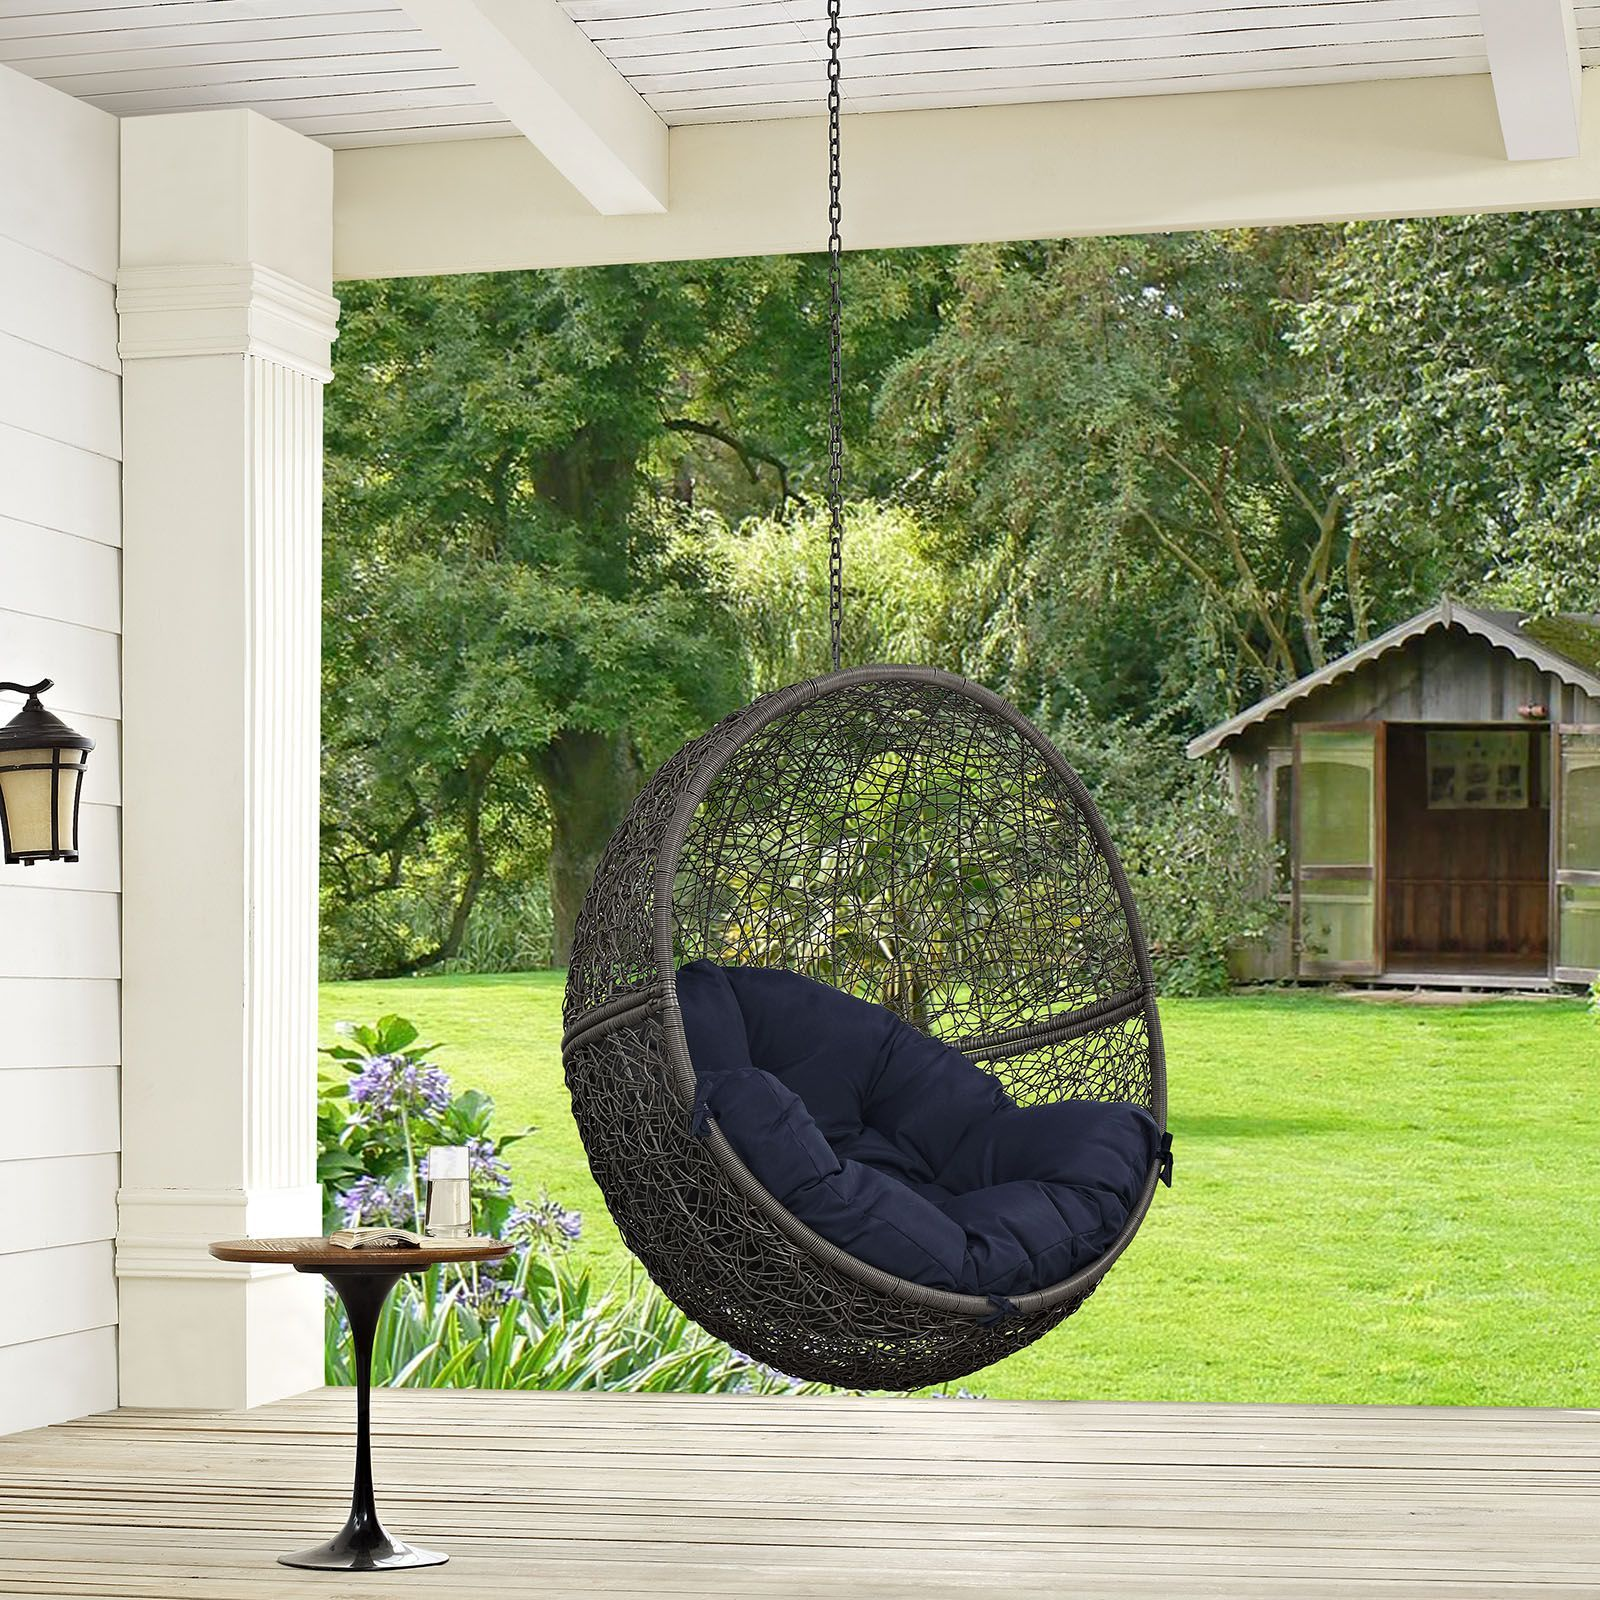 Hide outdoor patio swing chair with stand gray navy escape to an